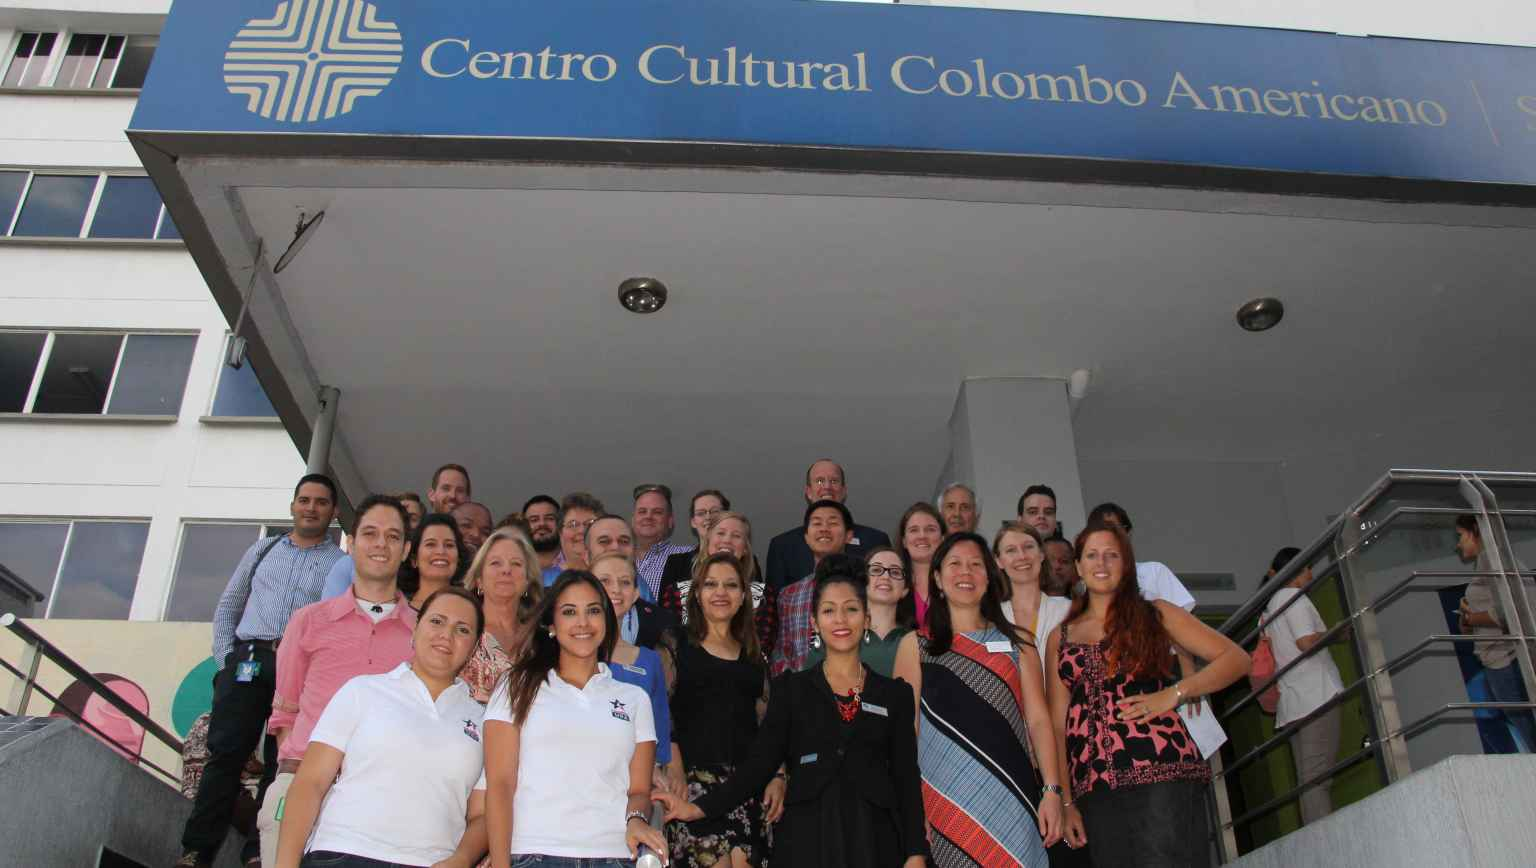 Cultural Center in Colombo Americano-Cali with international students of EducationUSA